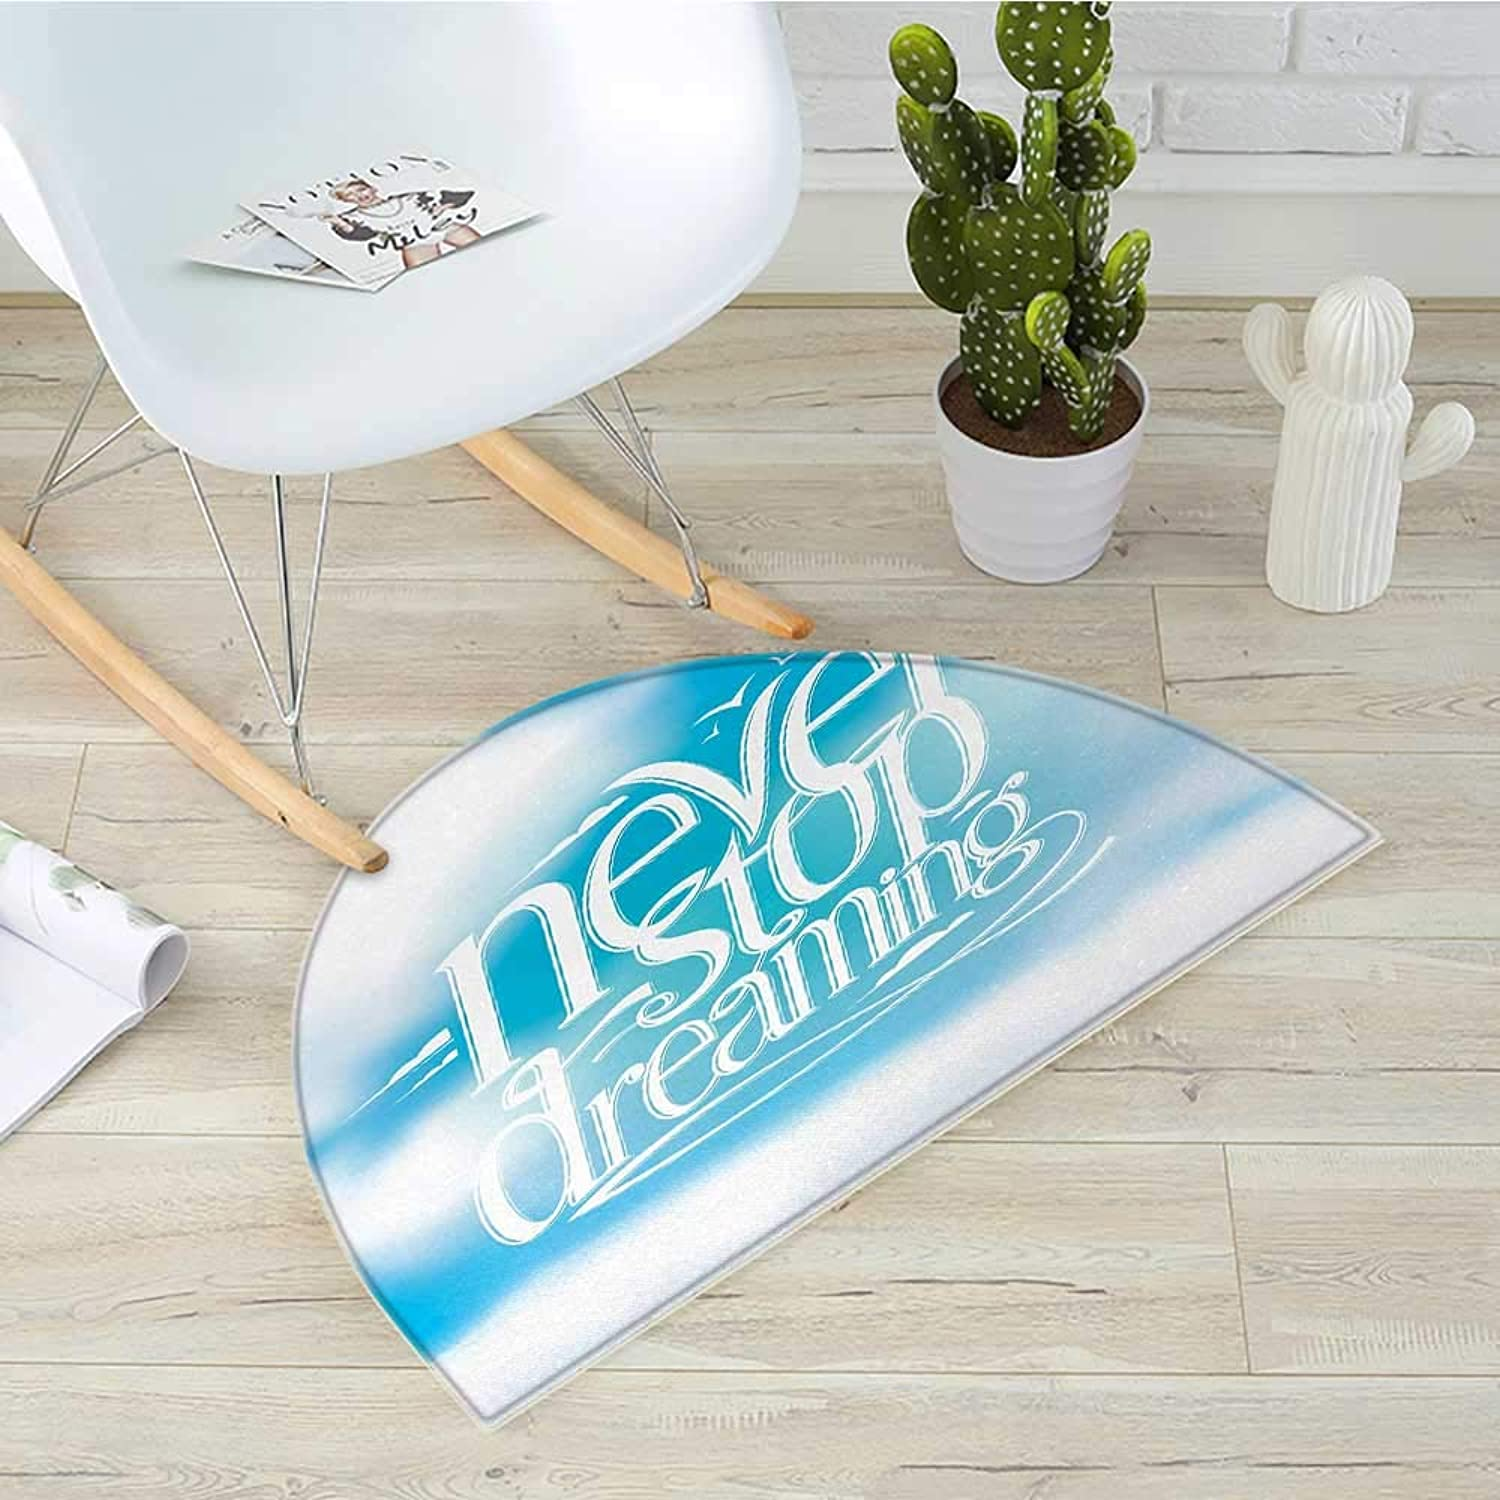 Quote Half Round Door mats Aqua Never Stop Dreaming Phrase Fluffy Cloudy Sky Future Imagination Hope Graphic Bathroom Mat H 19.7  xD 31.5  bluee White